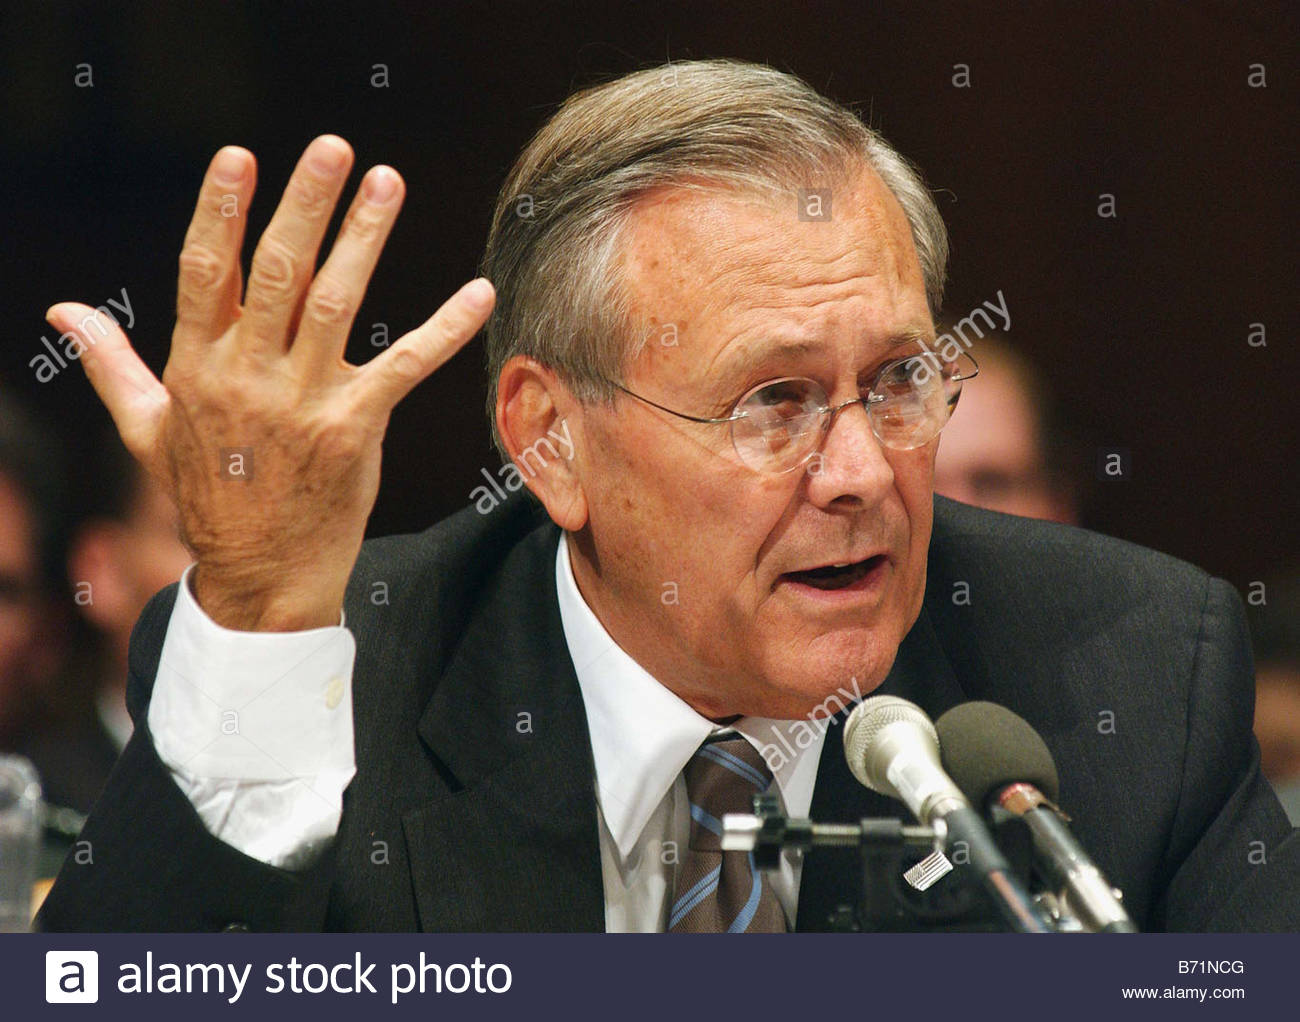 9 19 02 U S POLICY ON IRAQ Defense Secretary Donald H Rumsfeld during the Senate Armed Services hearing CONGRESSIONAL - Stock Image